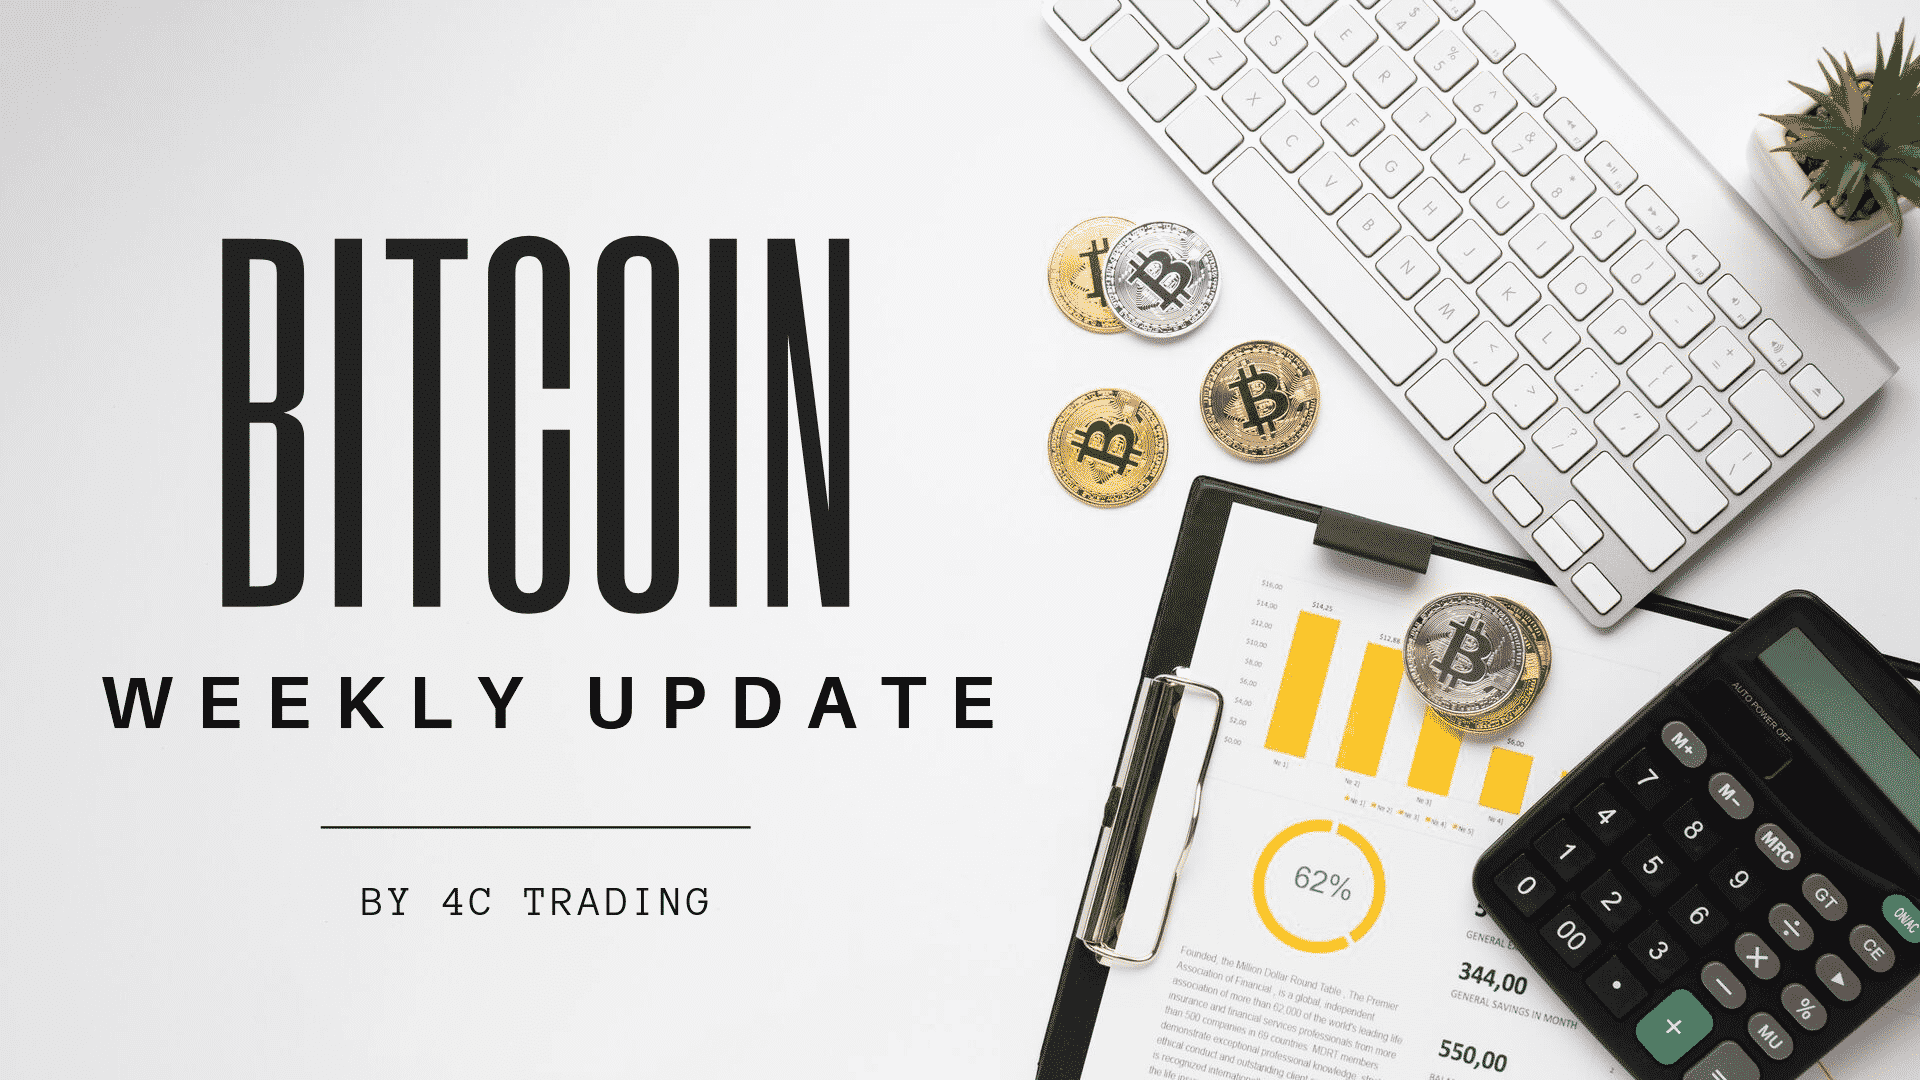 Bitcoin Weekly Update #3